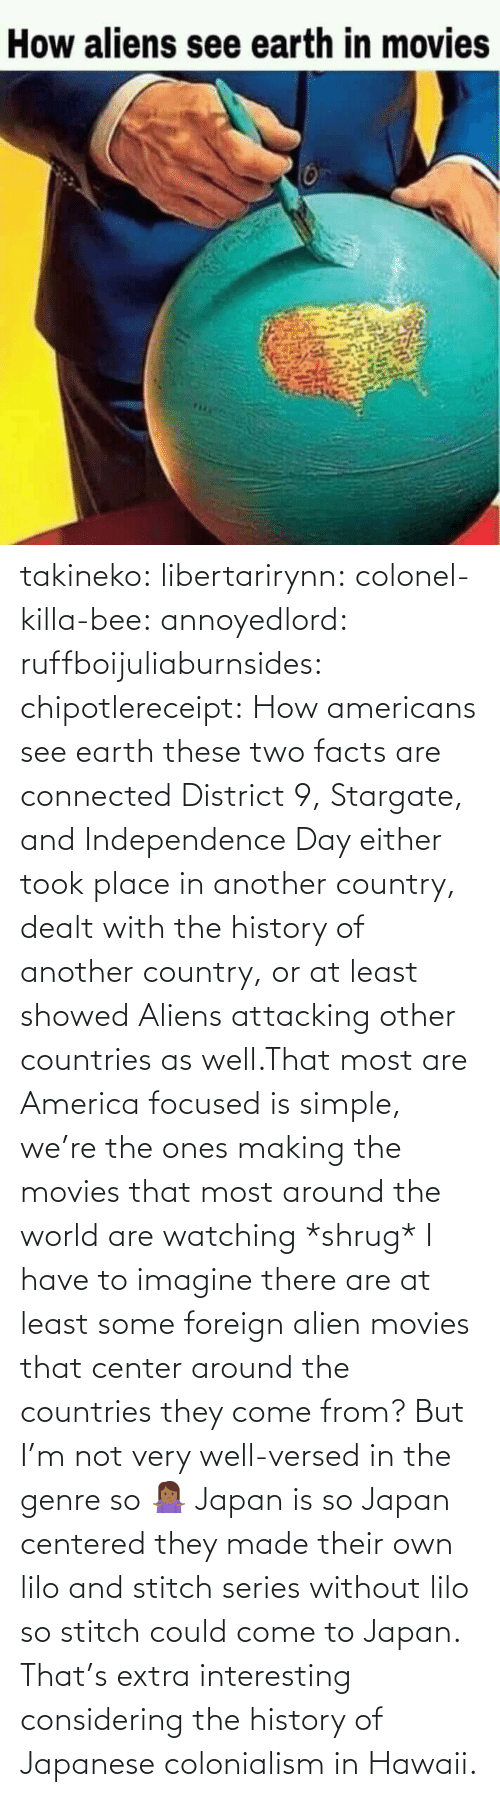 Center: takineko:  libertarirynn:  colonel-killa-bee:  annoyedlord: ruffboijuliaburnsides:  chipotlereceipt: How americans see earth these two facts are connected     District 9, Stargate, and Independence Day either took place in another country, dealt with the history of another country, or at least showed Aliens attacking other countries as well.That most are America focused is simple, we're the ones making the movies that most around the world are watching *shrug*   I have to imagine there are at least some foreign alien movies that center around the countries they come from? But I'm not very well-versed in the genre so 🤷🏾‍♀️   Japan is so Japan centered they made their own lilo and stitch series without lilo so stitch could come to Japan.    That's extra interesting considering the history of Japanese colonialism in Hawaii.